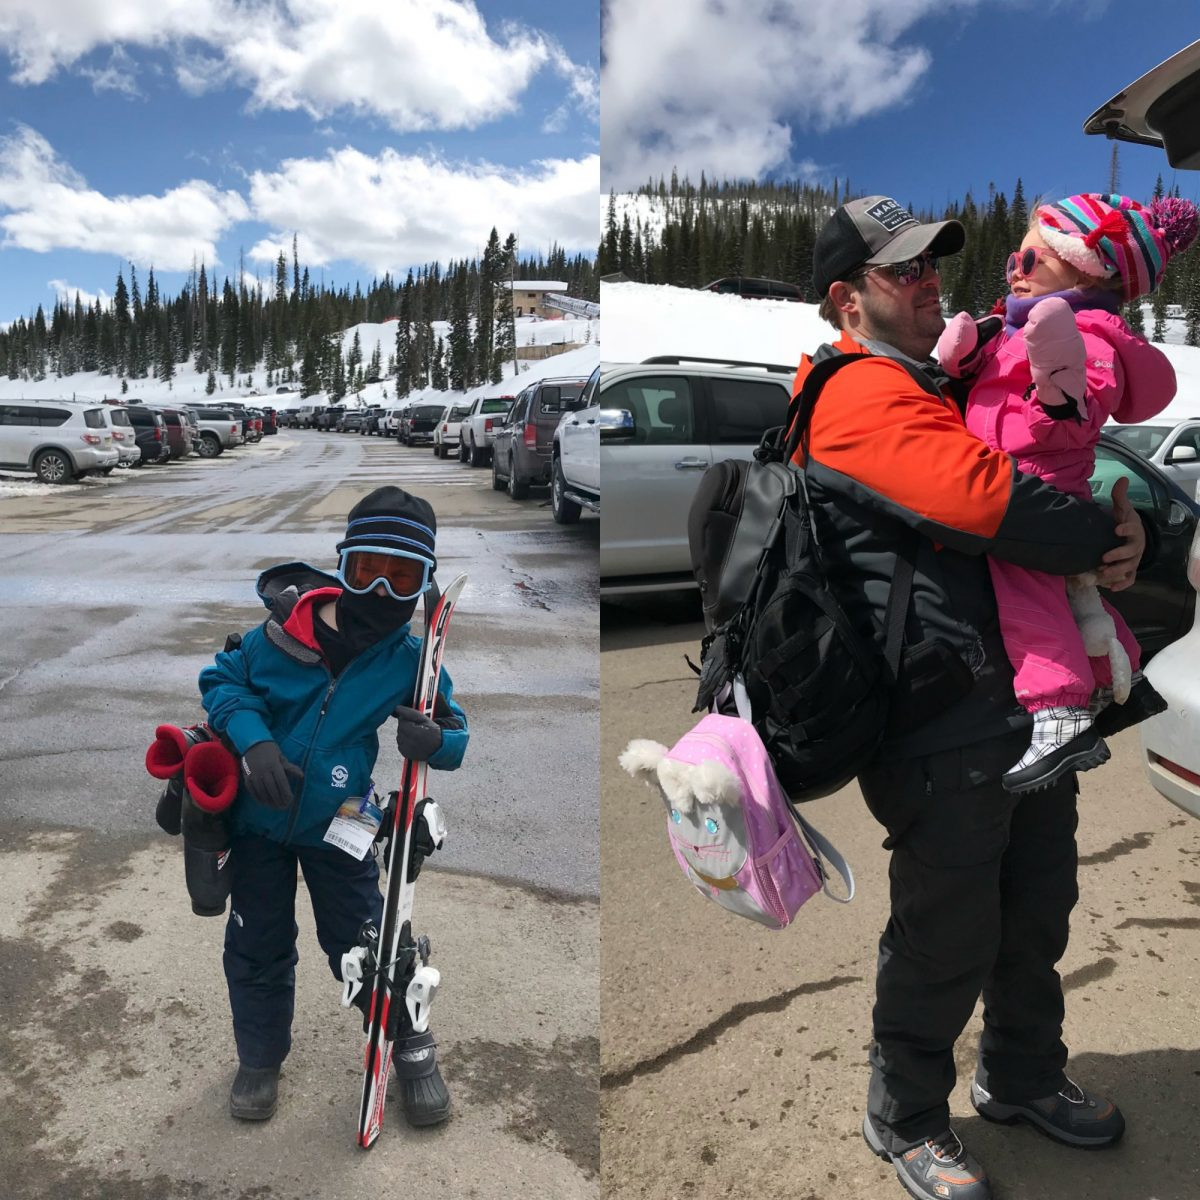 Family ski trip with a toddler.5